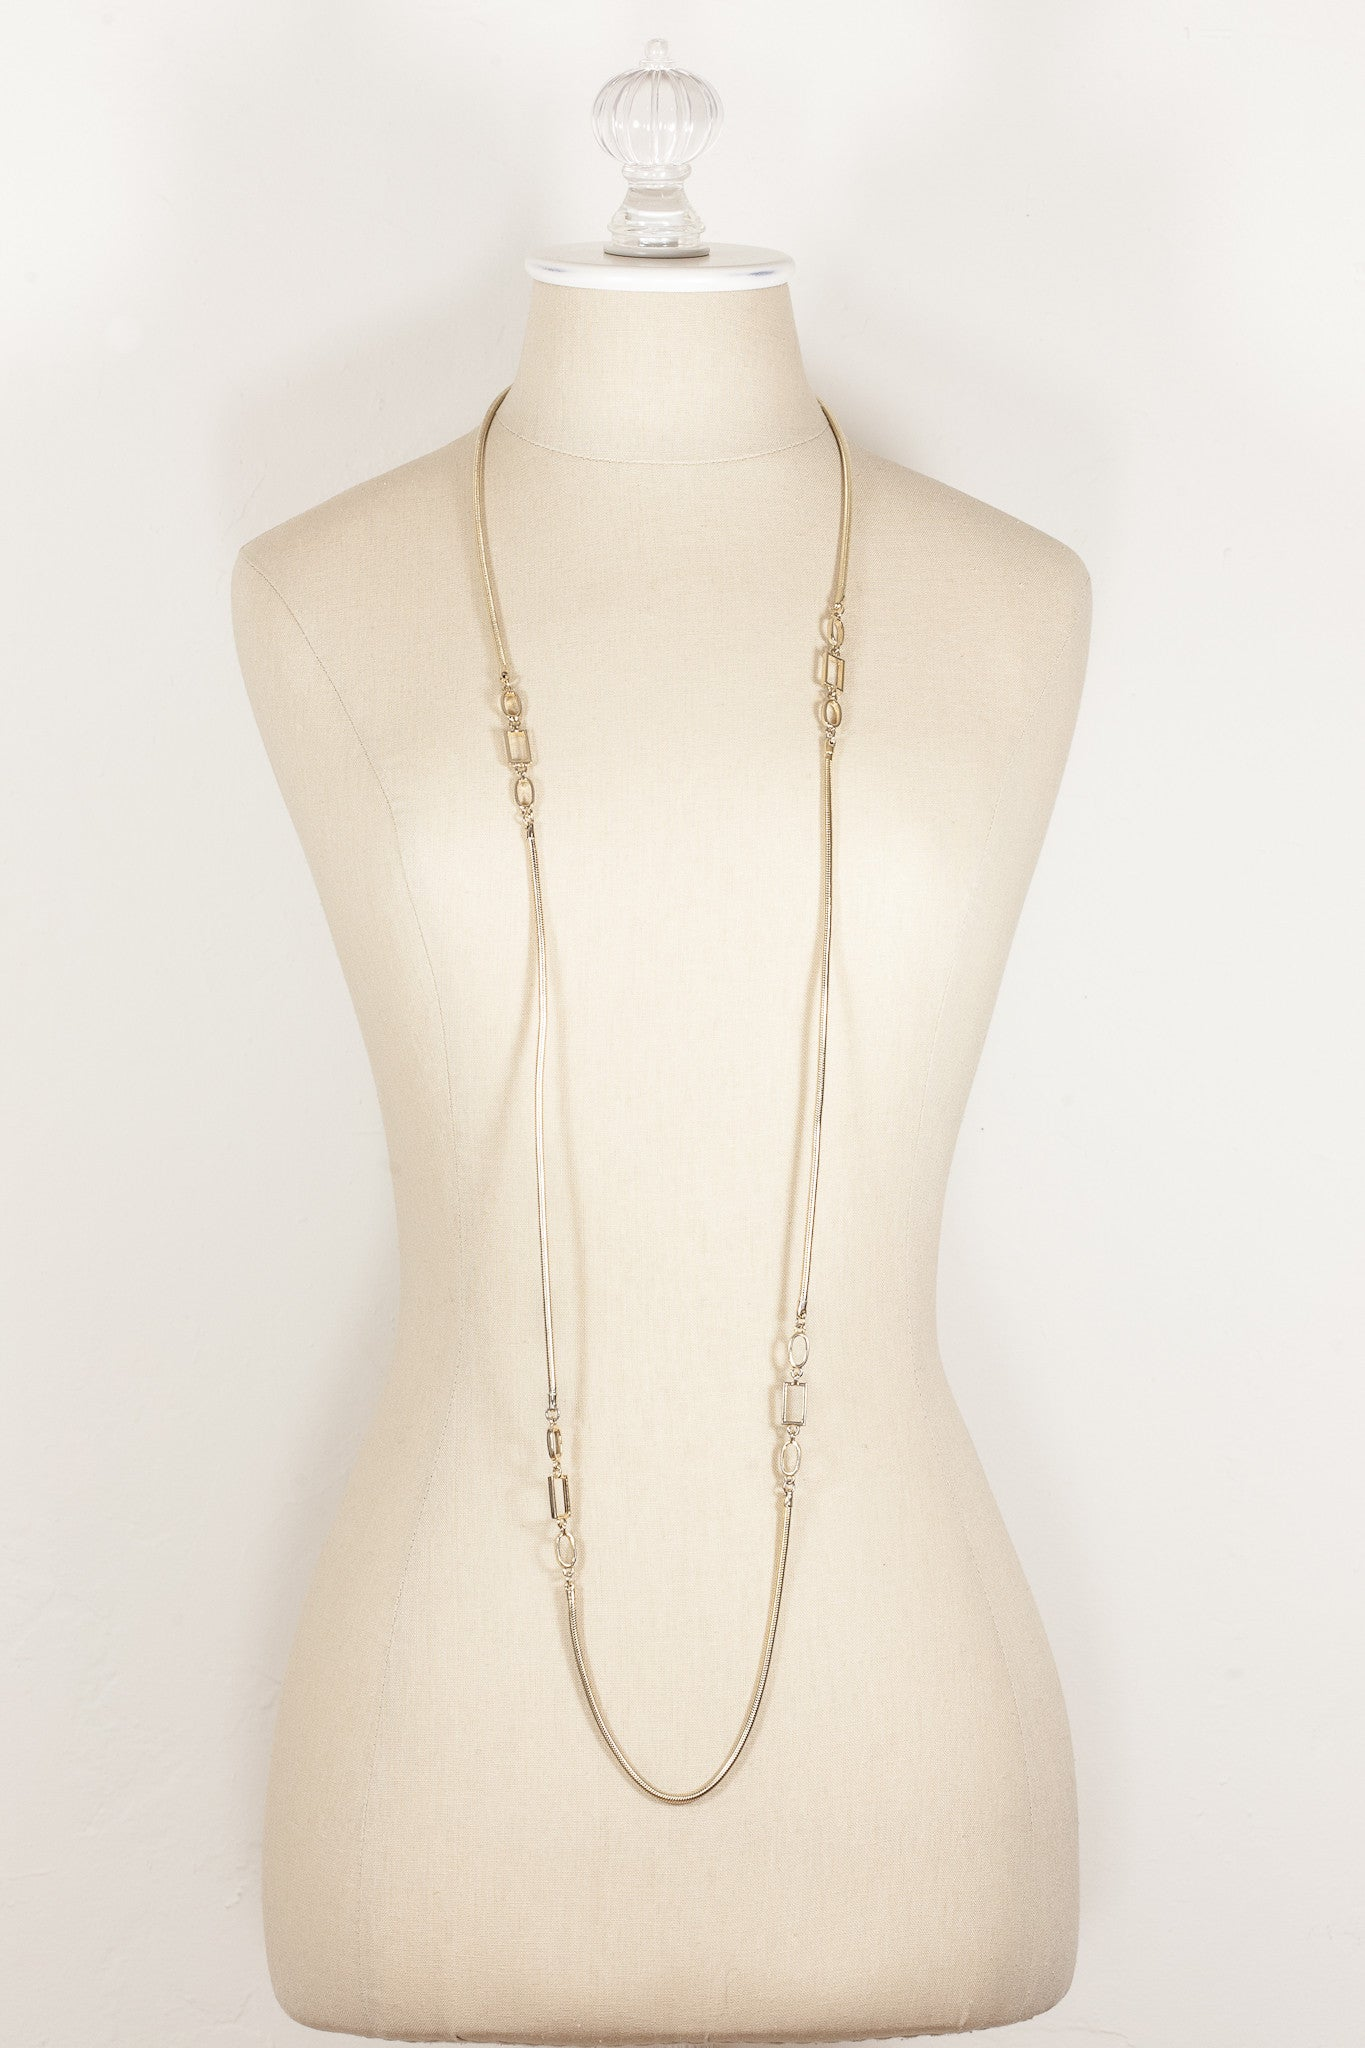 70's__Vintage__Extra Long Snake Chain Necklace